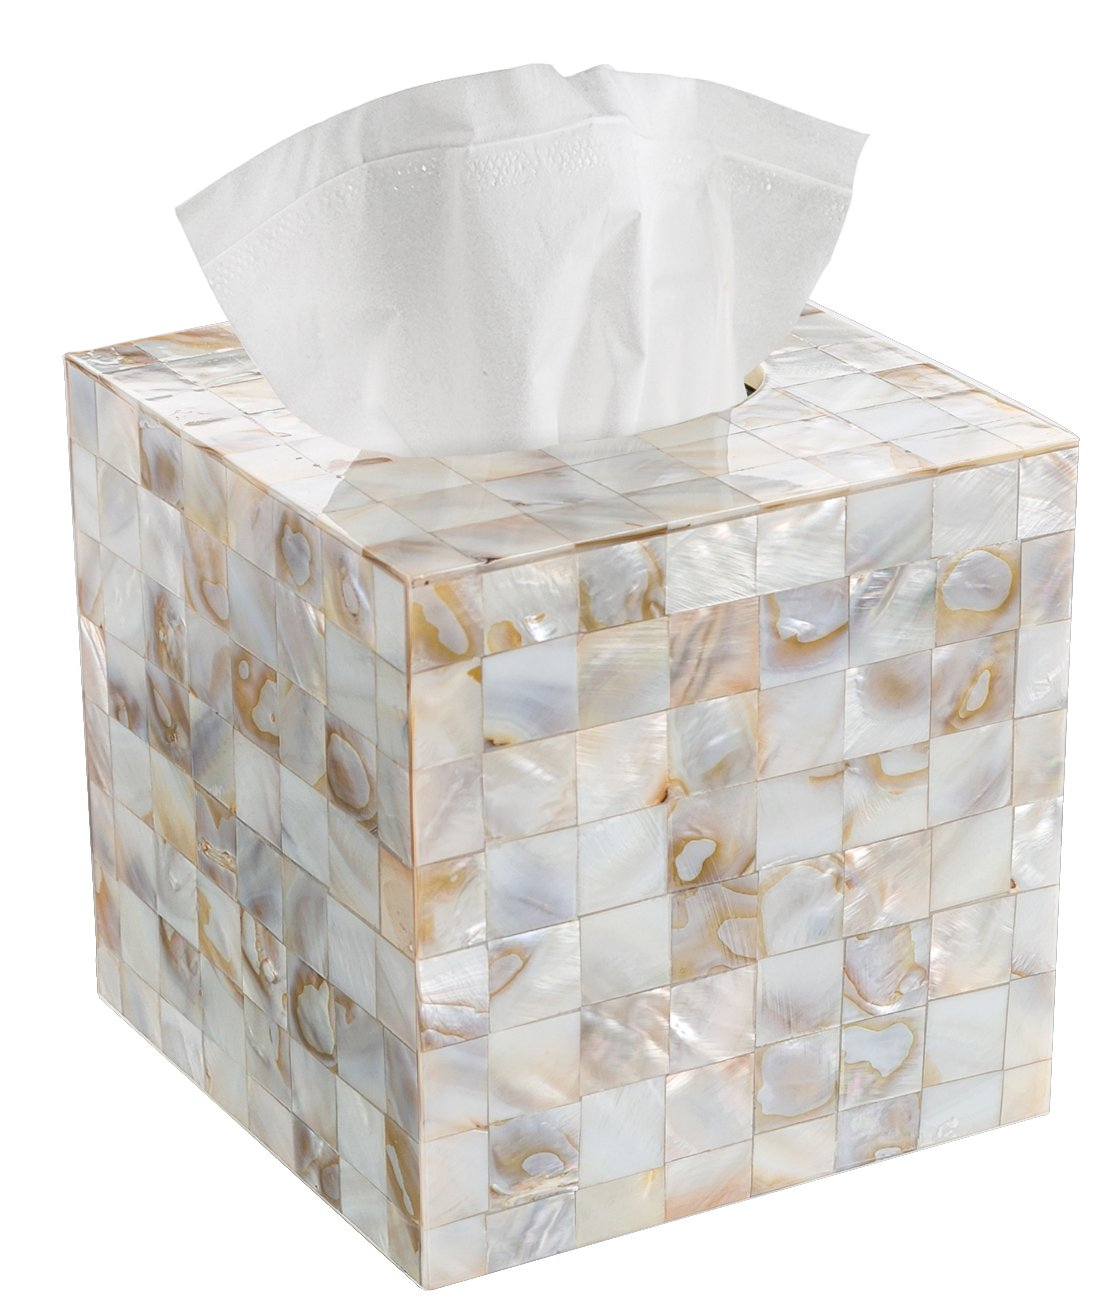 Creative Scents Square Tissue Holder - Decorative Tissue Box Cover is Finished in Beautiful Mother of Pearl Milano Collection by Creative Scents